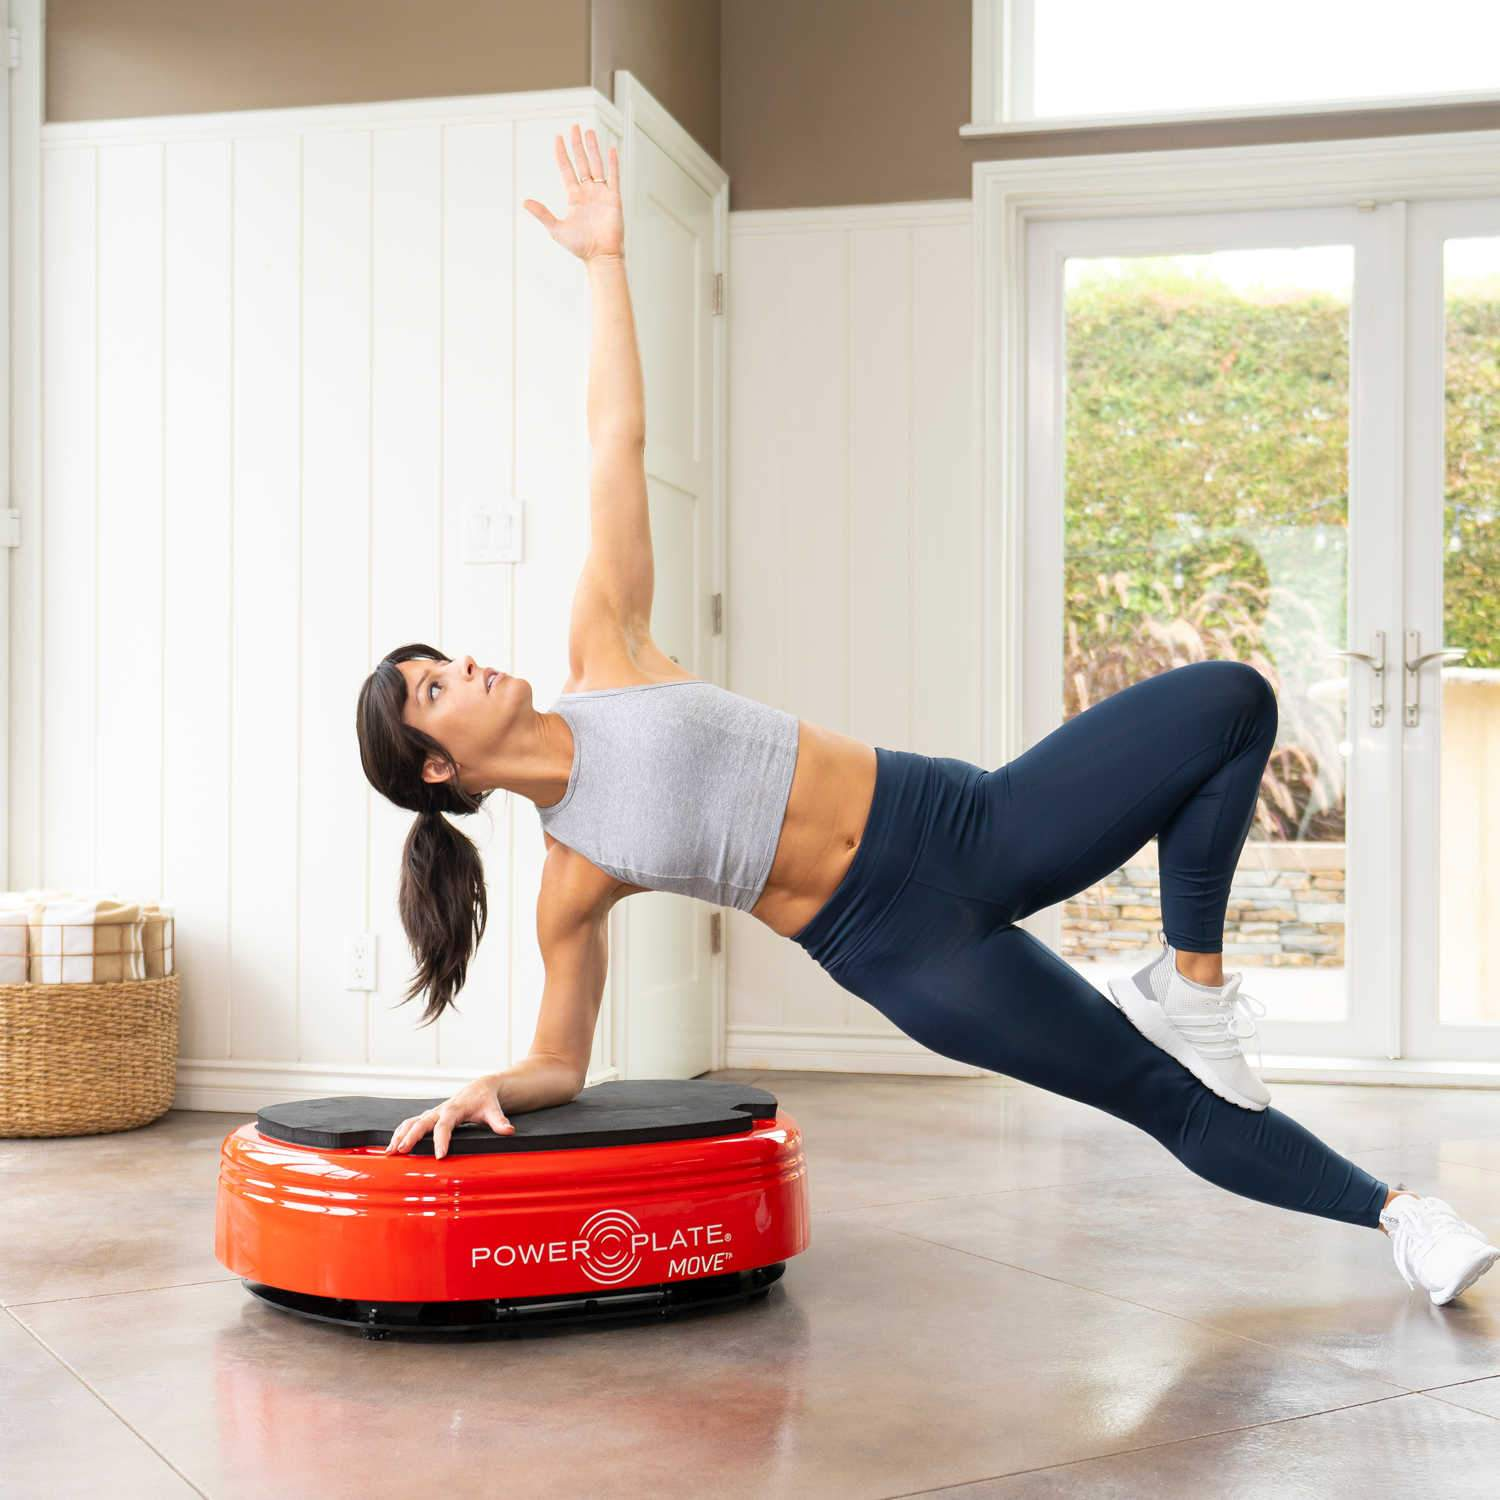 Power Plate MOVE vibration machine Power Plate Red